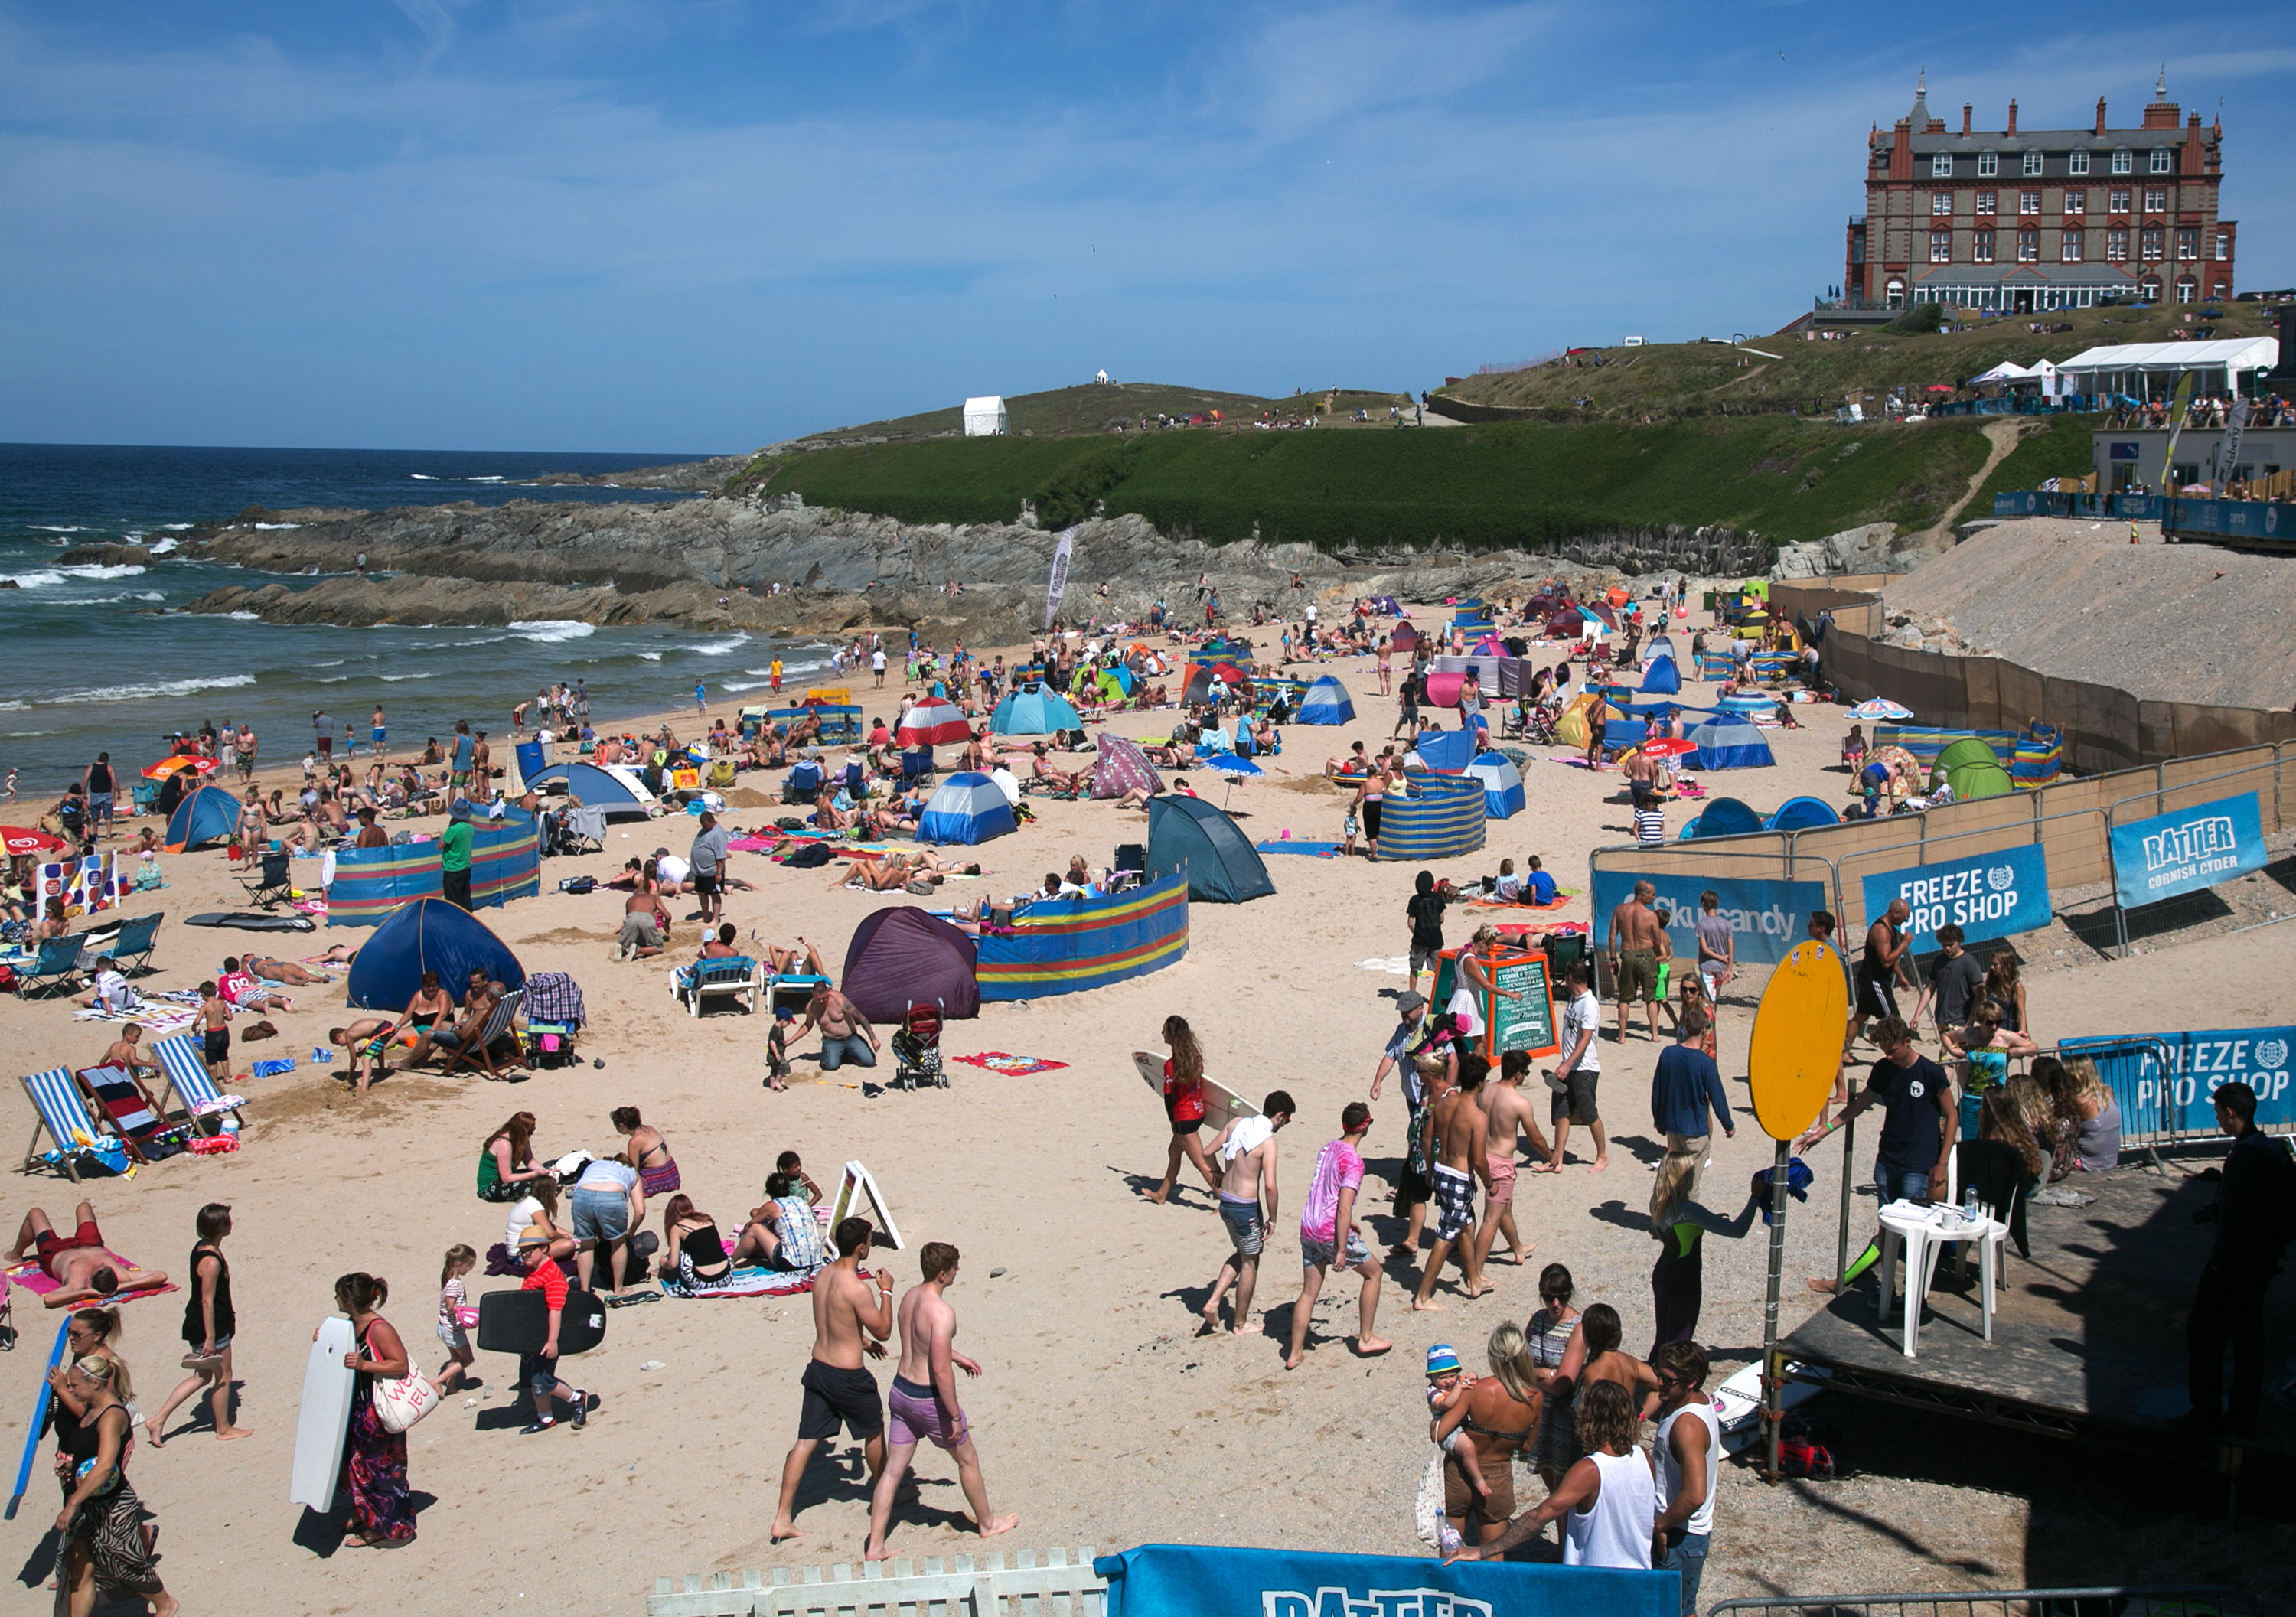 Crowds gather on Fistral Beach on the second day of the Boardmasters surf and music festival in Newquay on August 7, 2014 in Cornwall, England.